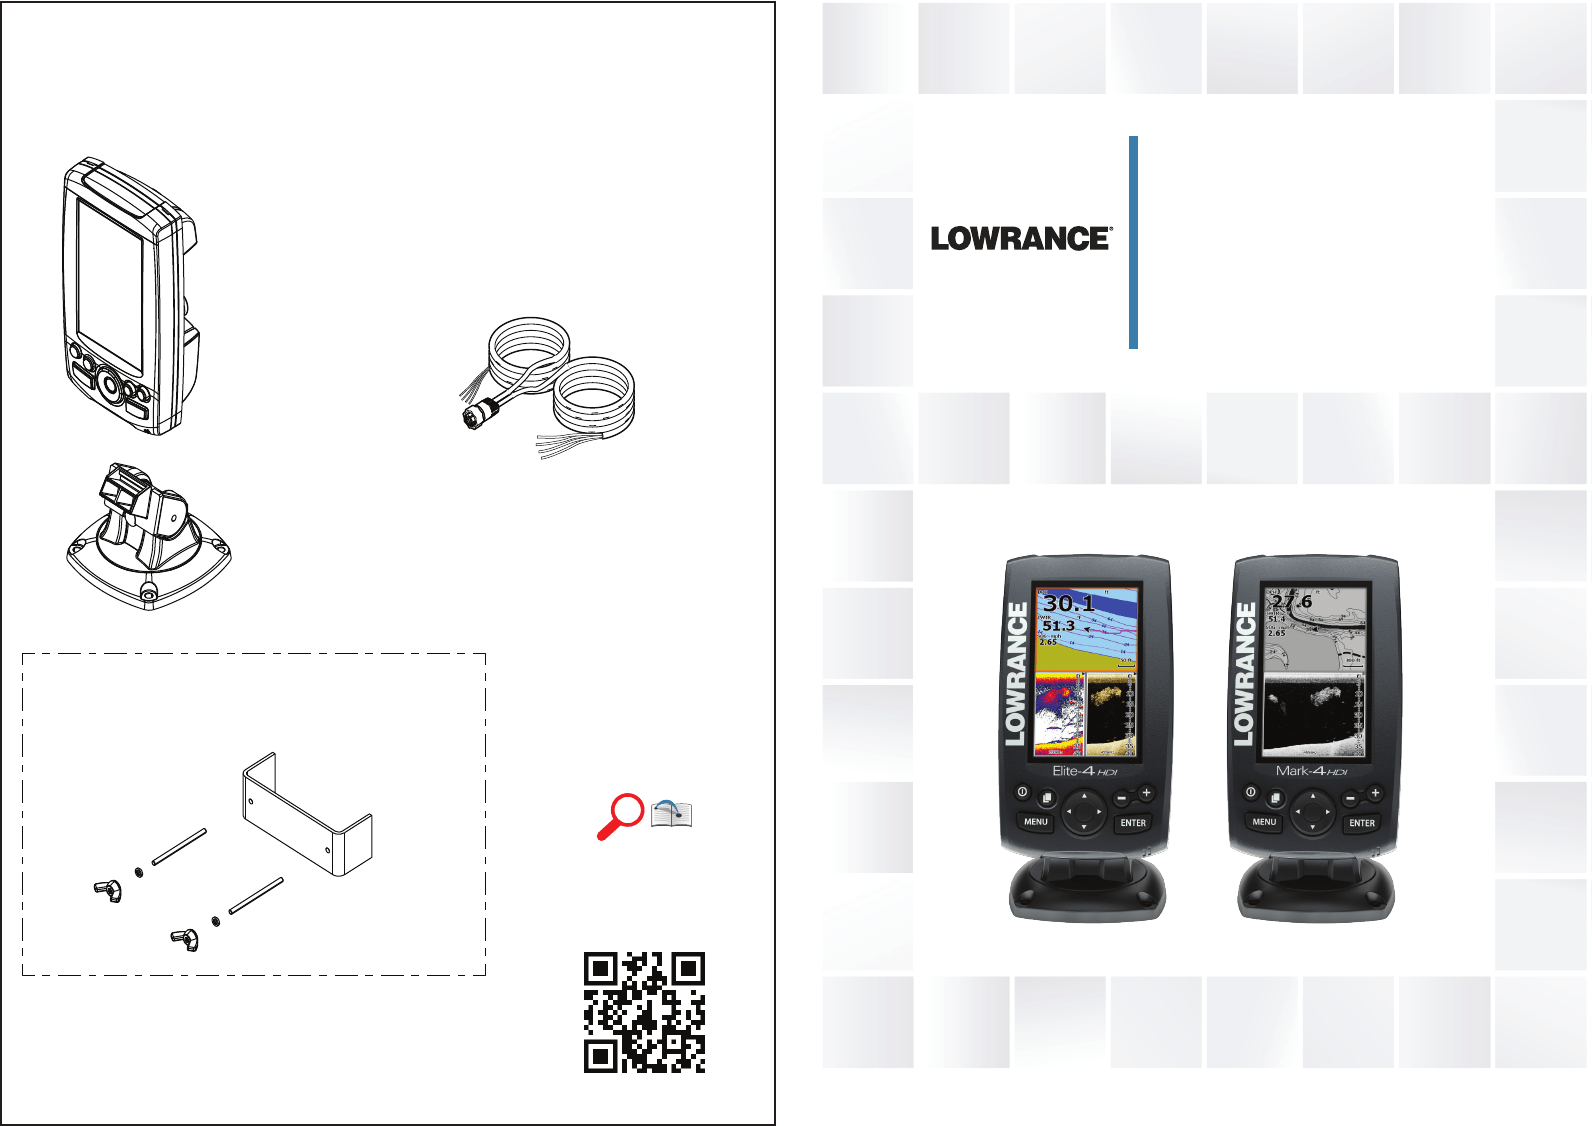 Lowrance electronic Fish Finder ELITE-4HDI User Guide